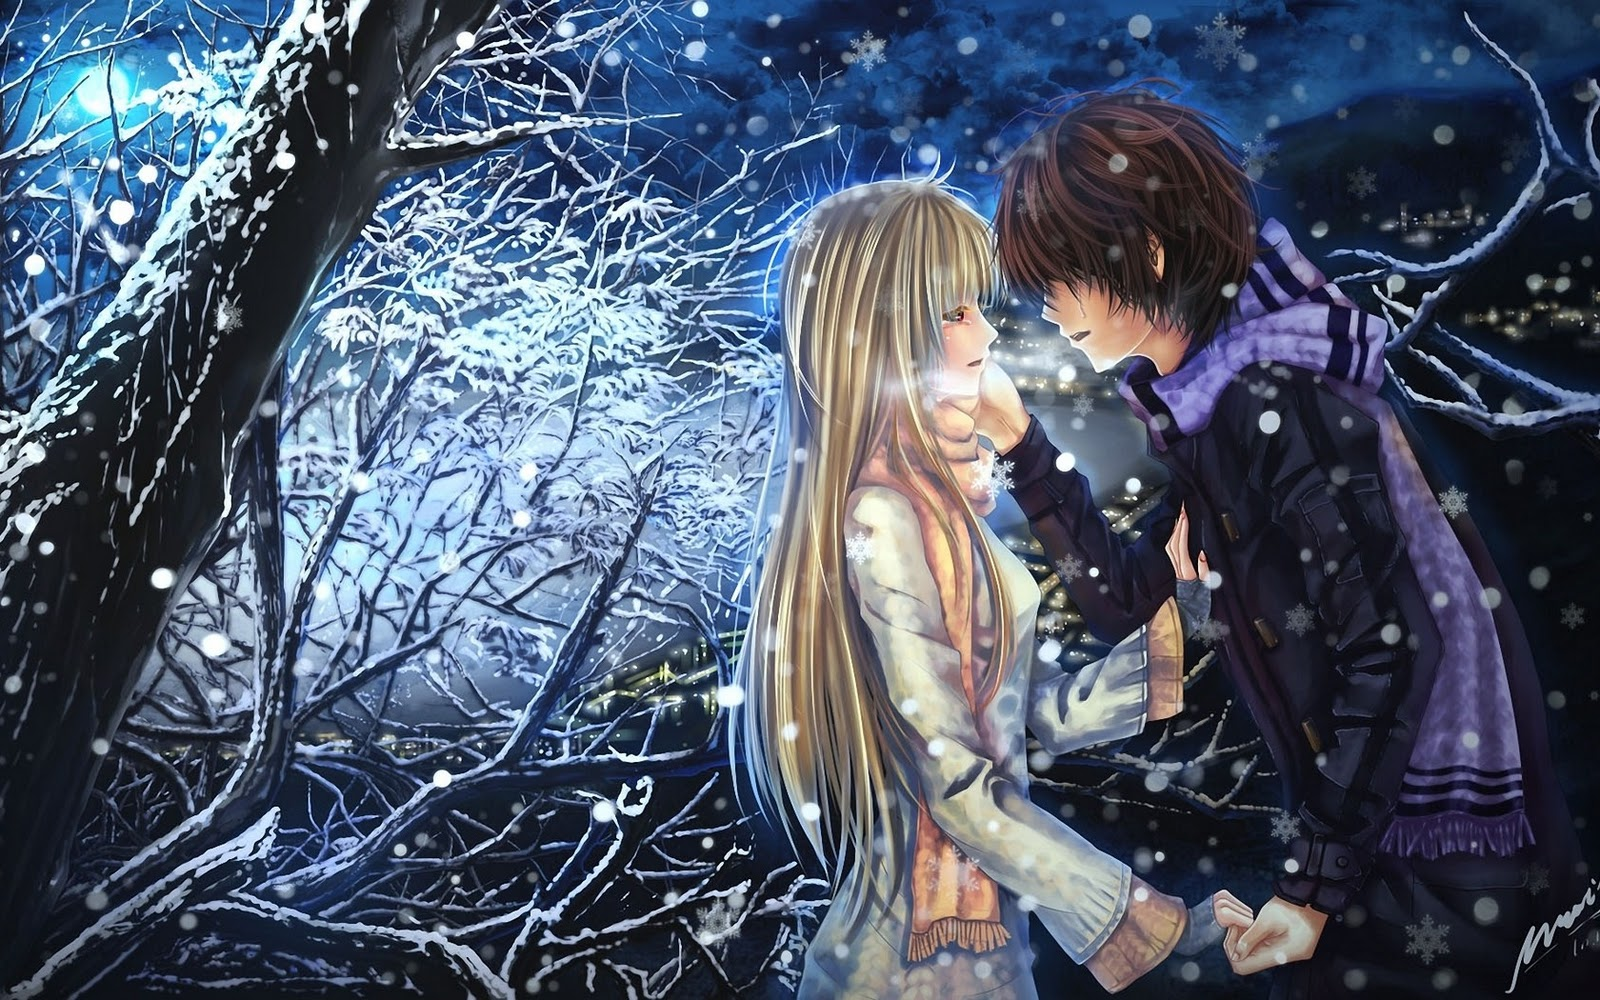 Love couple Wallpaper In Hd : A2Z Wallpapers: Anime couples In Love Wallpapers